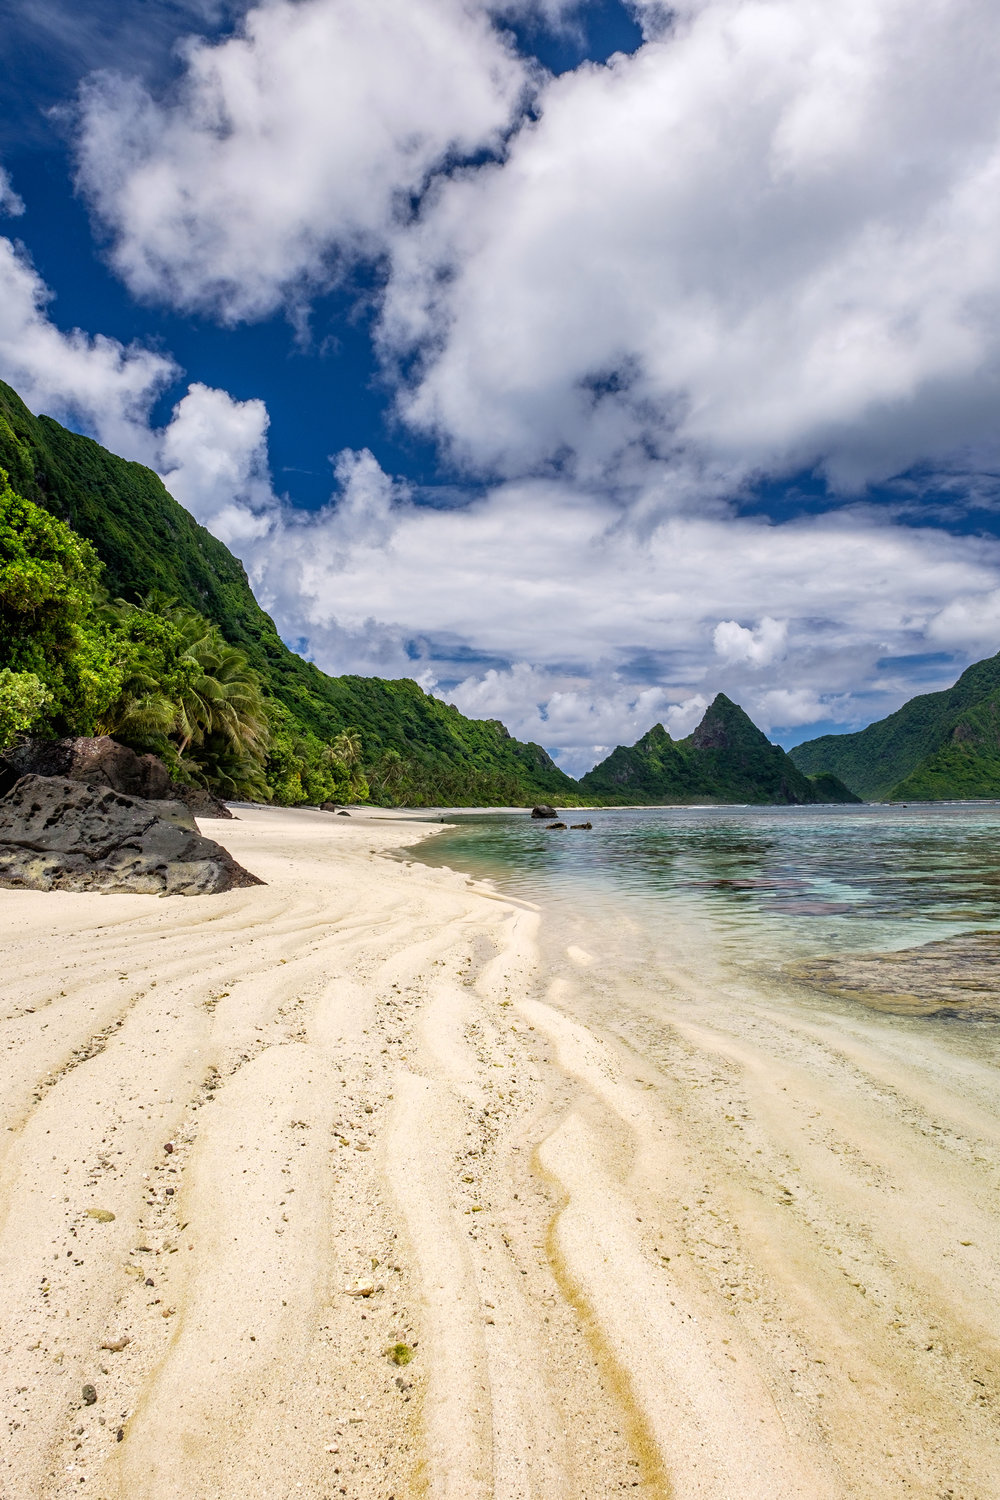 Protection by the National Park Service makes for unspoiled beaches in American Samoa.